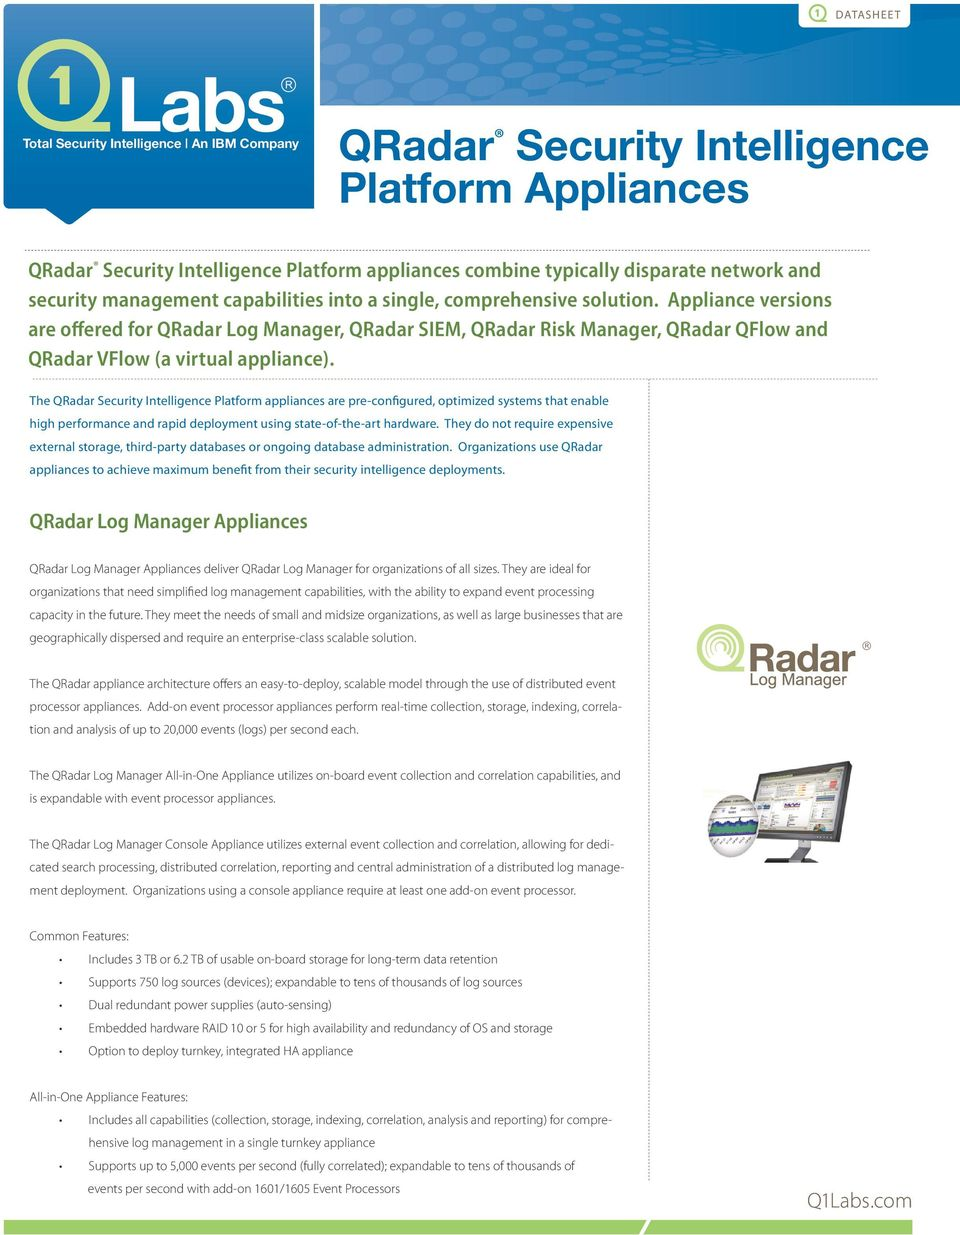 Appliance versions are offered for QRadar Log Manager, QRadar SIEM, QRadar Risk Manager, QRadar QFlow and QRadar VFlow (a virtual appliance).